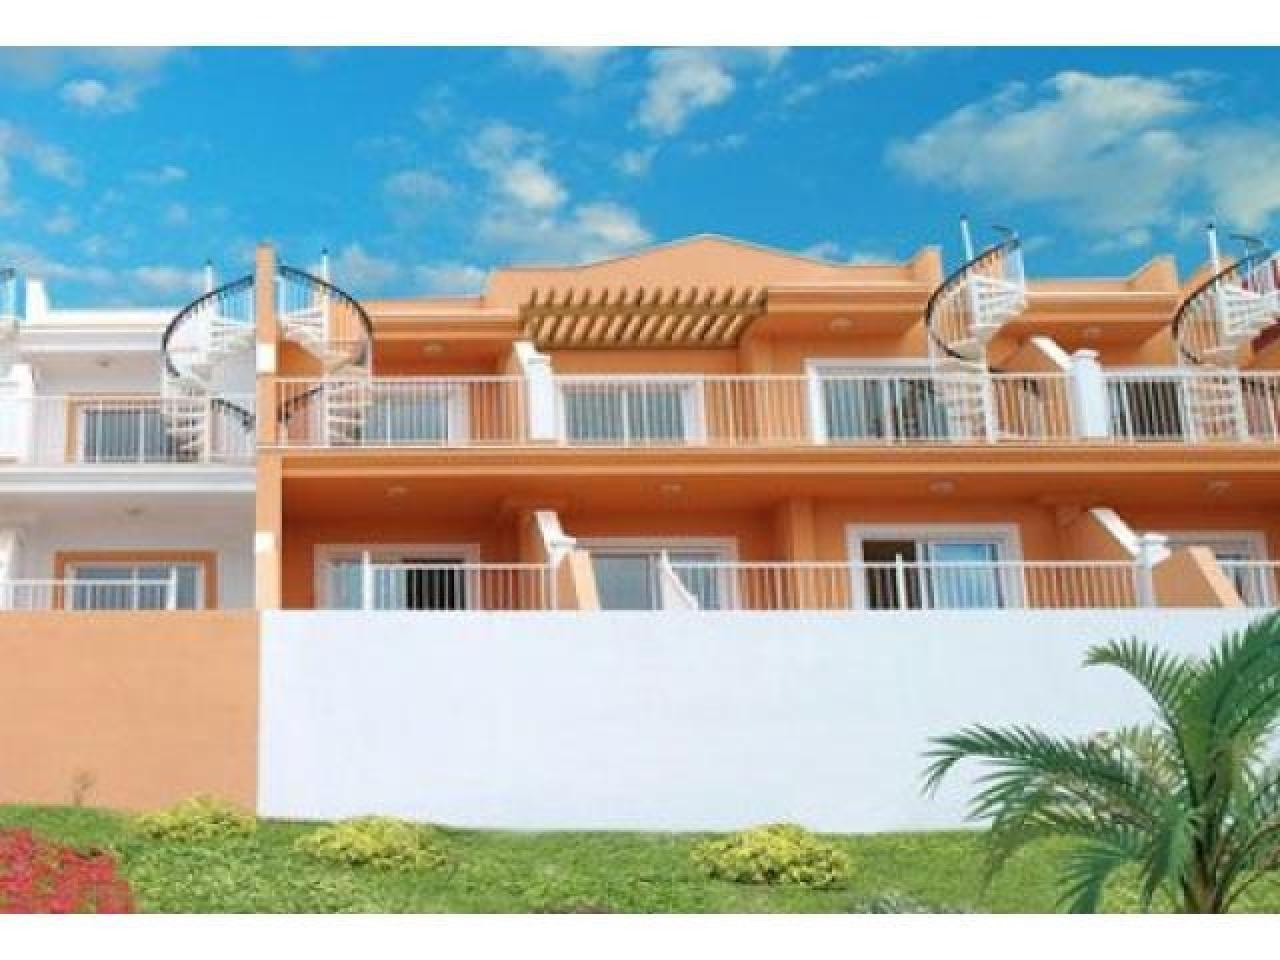 Real estate in Tenerife for sale » #43 - 1